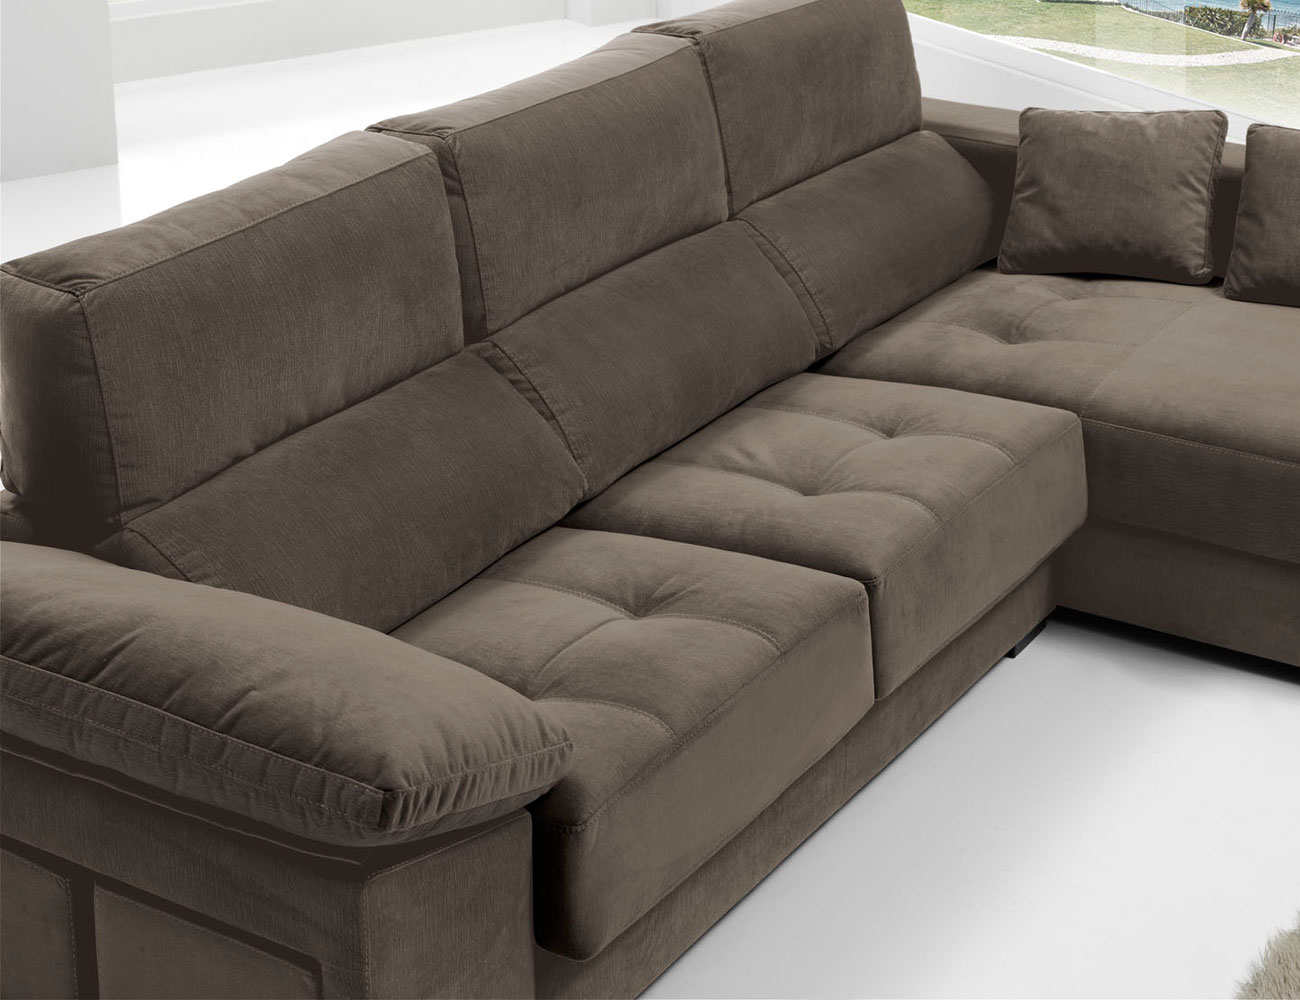 Sofa chaiselongue anti manchas bering pouf 239